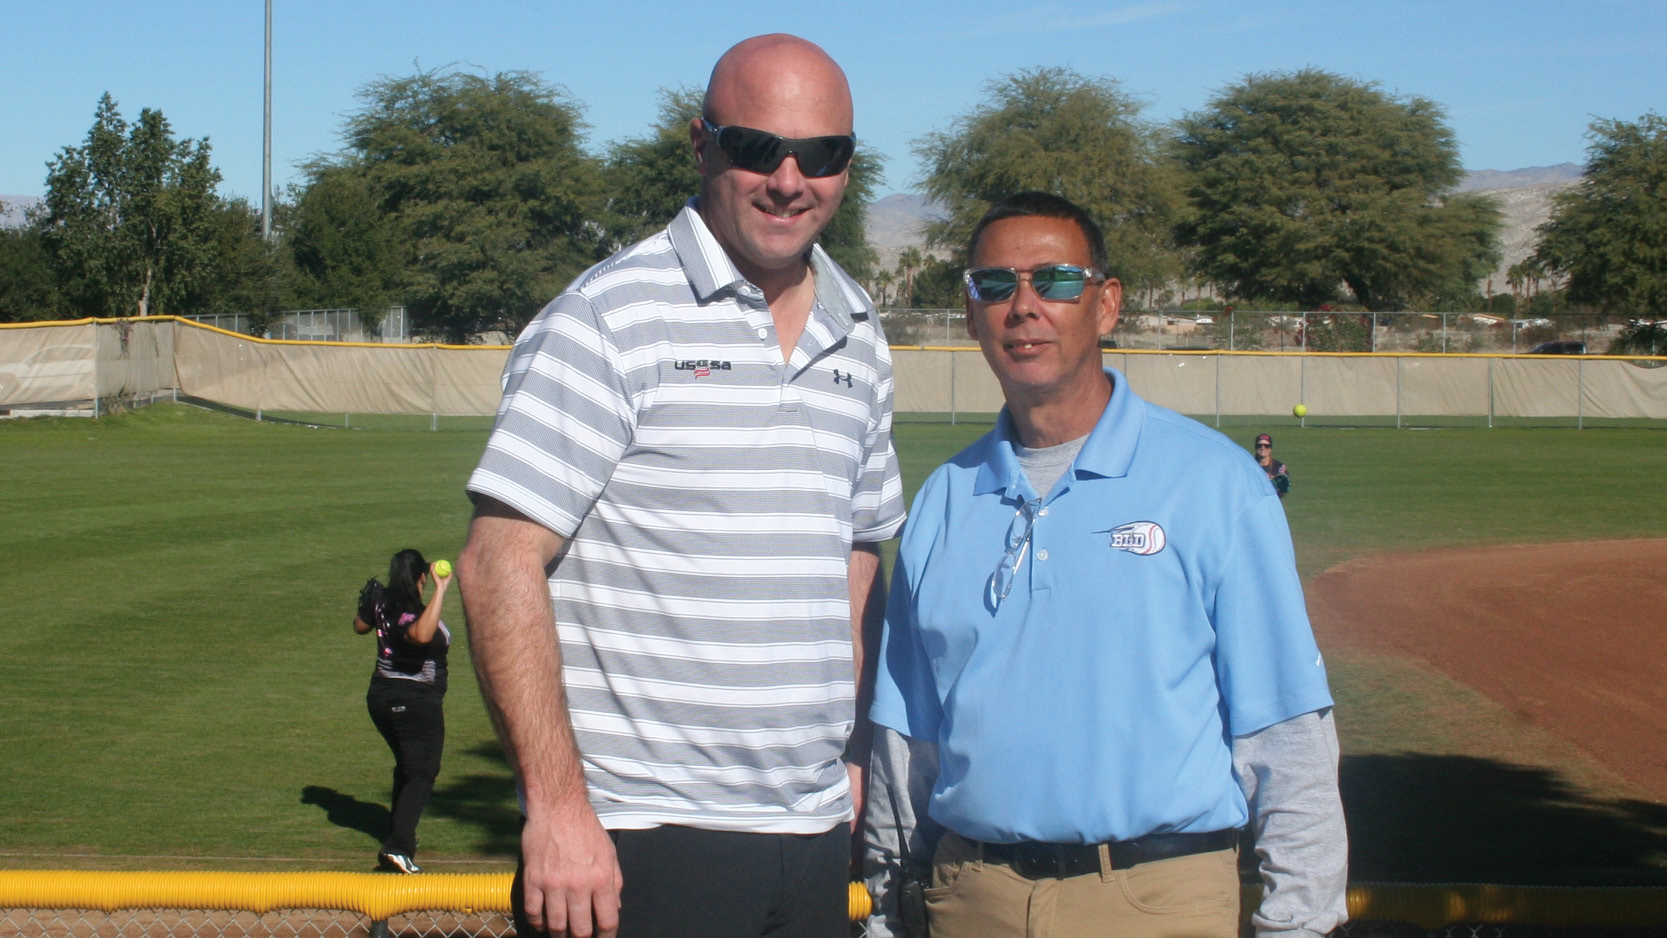 USSSA Washington State Director, Strojan Kennison (left) and Big League dreams' GM, Ed Farmer.